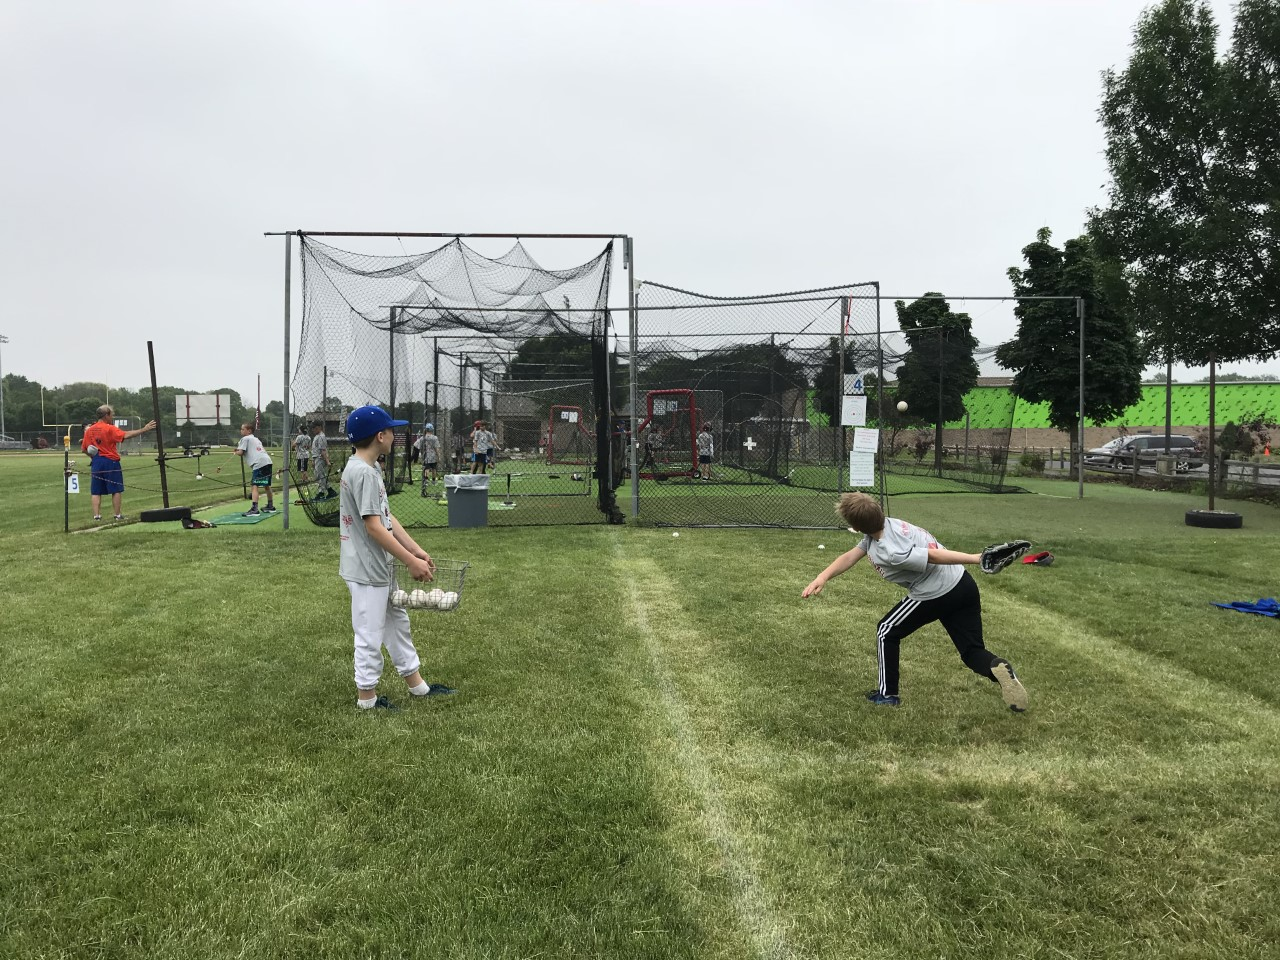 Player practicing pitching at a net